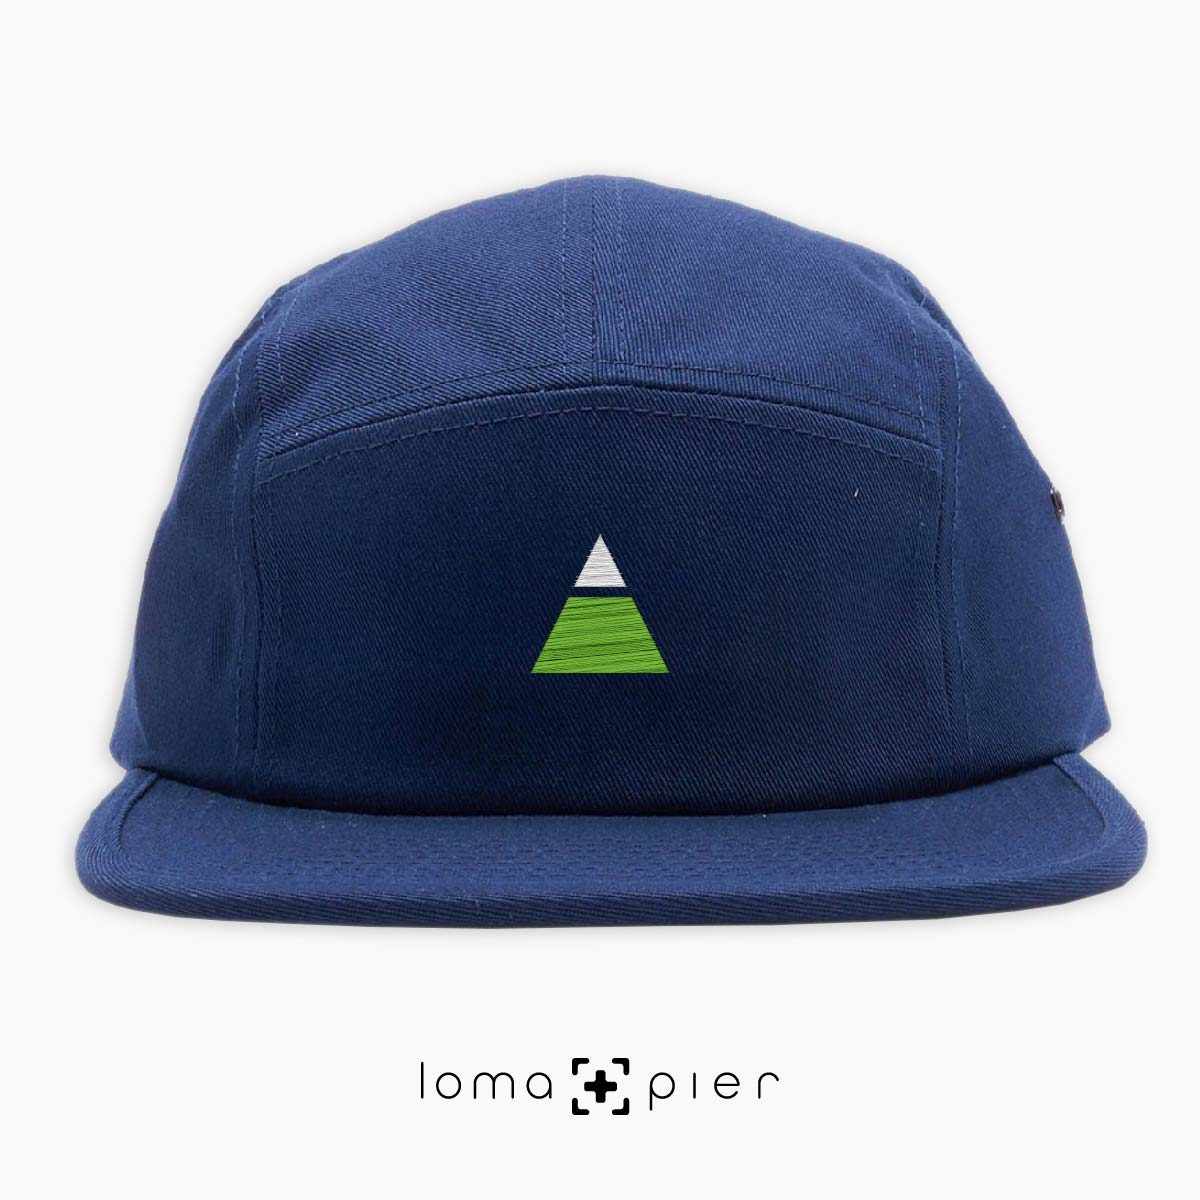 TRYANGLE icon embroidered on a navy blue cotton 5-panel hat with multicolor thread by loma+pier hat store